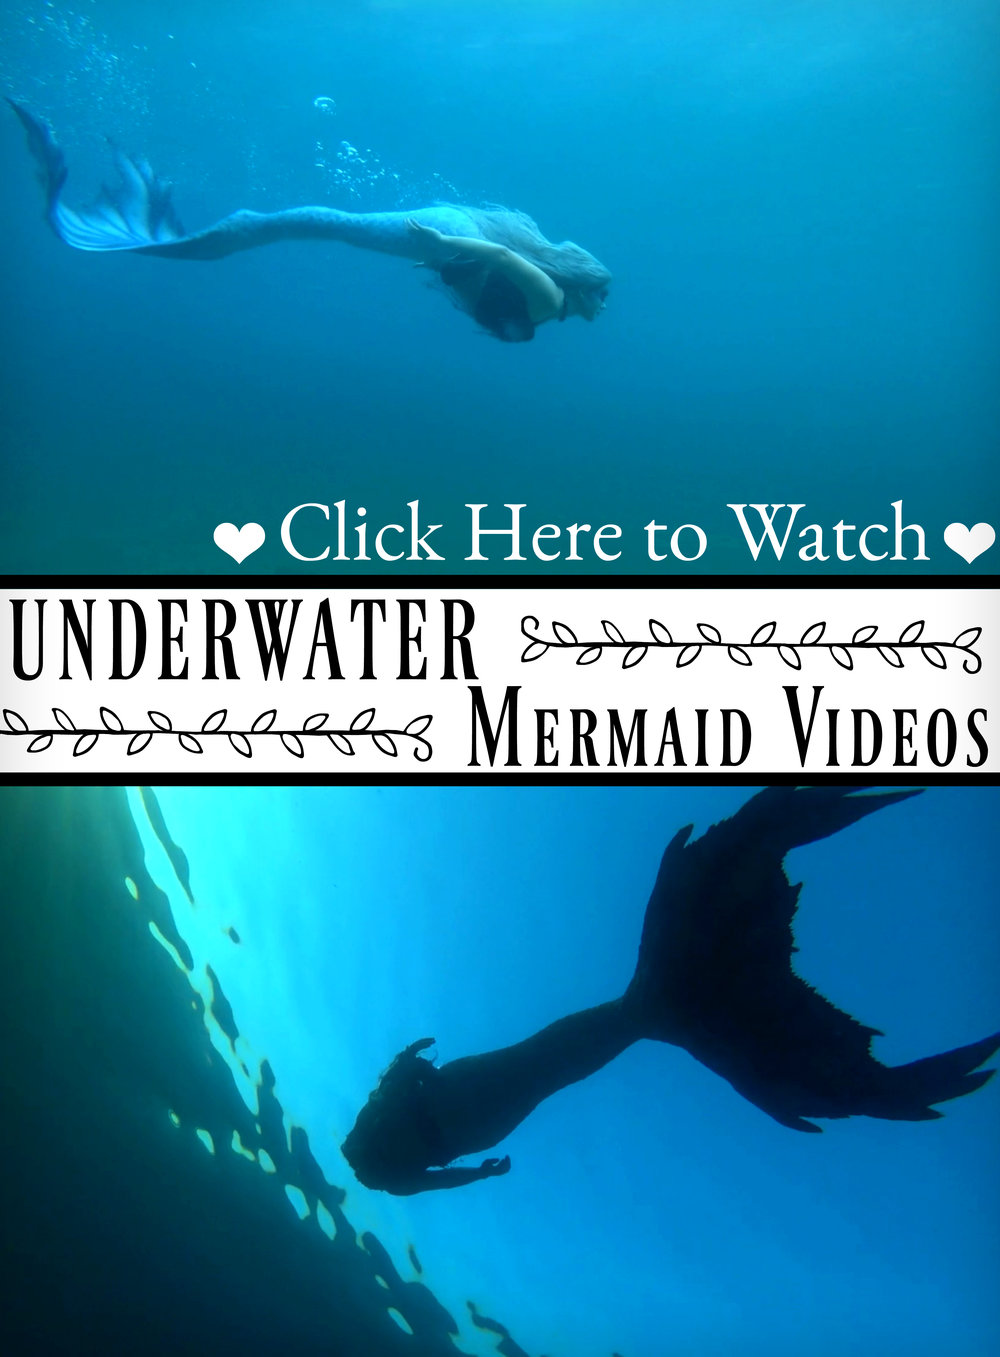 Underwater Mermaid Videos: Videos of mermaids swimming underwater ♥ CLICK HERE ♥ to watch videos of Mermaid Phantom and her friends swimming around in Lake Michigan and (potentially) other locations around the world. New underwater videos are released monthly, and new Fairy Tale/mermaid themed tutorials, crafts and swimming videos are posted weekly. Make sure to subscribe to The Magic Crafter so that you don't miss a video! It's all free! ♥